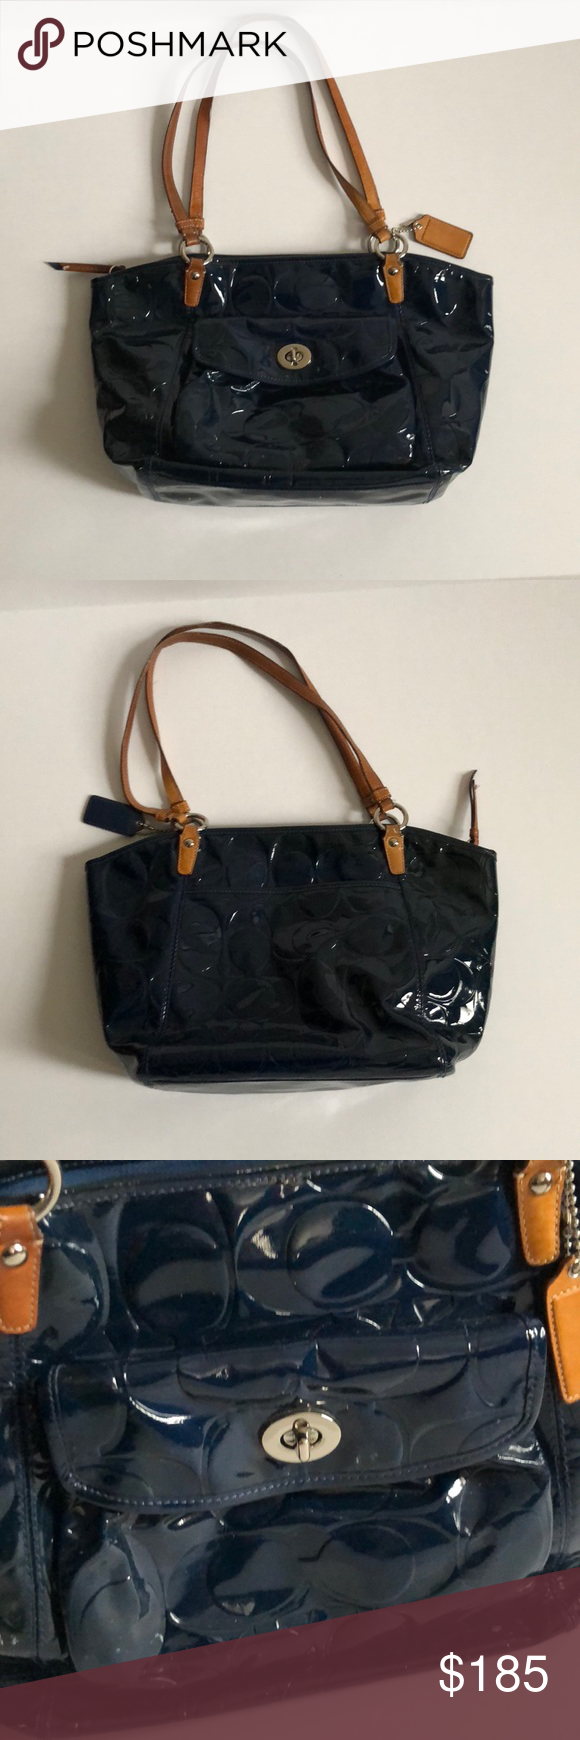 e2deb36e29 Coach bag Patent leather navy blue logo Coach bag with front clasp pocket  and back pocket. Lining has small stain above inside pocket.